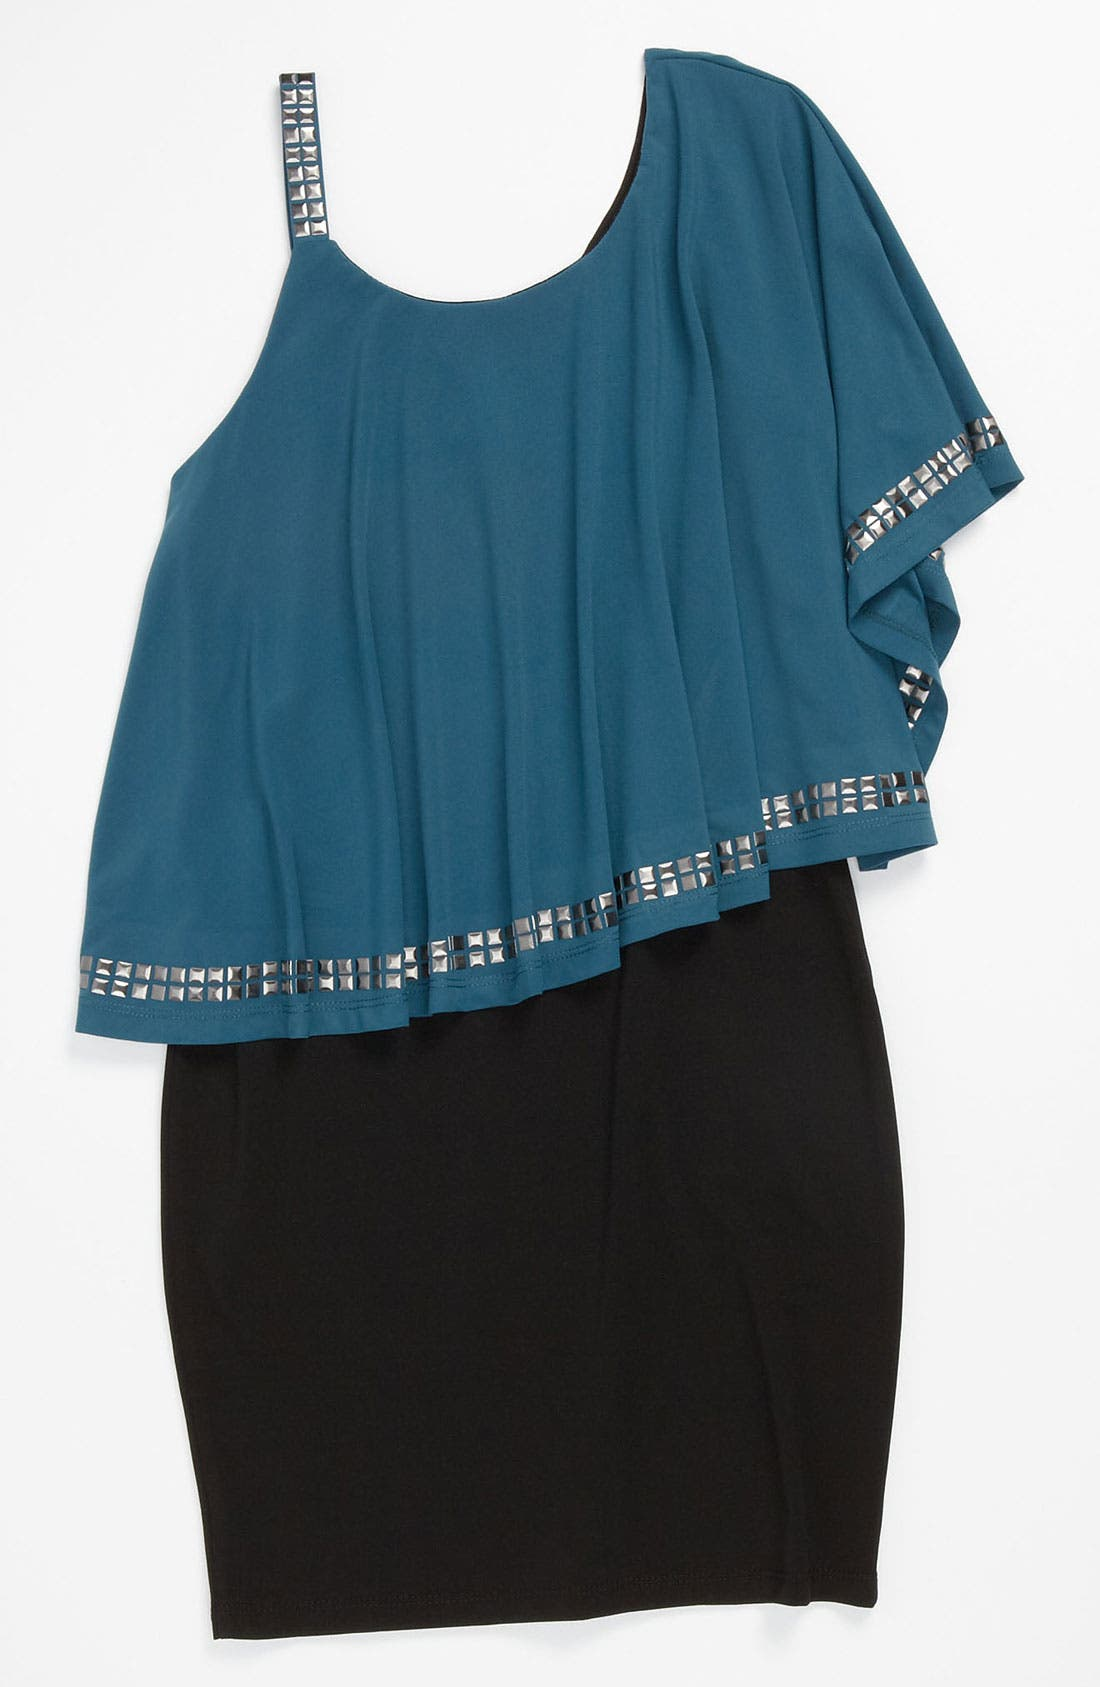 Main Image - Elisa B Ruffle Top Dress (Big Girls)